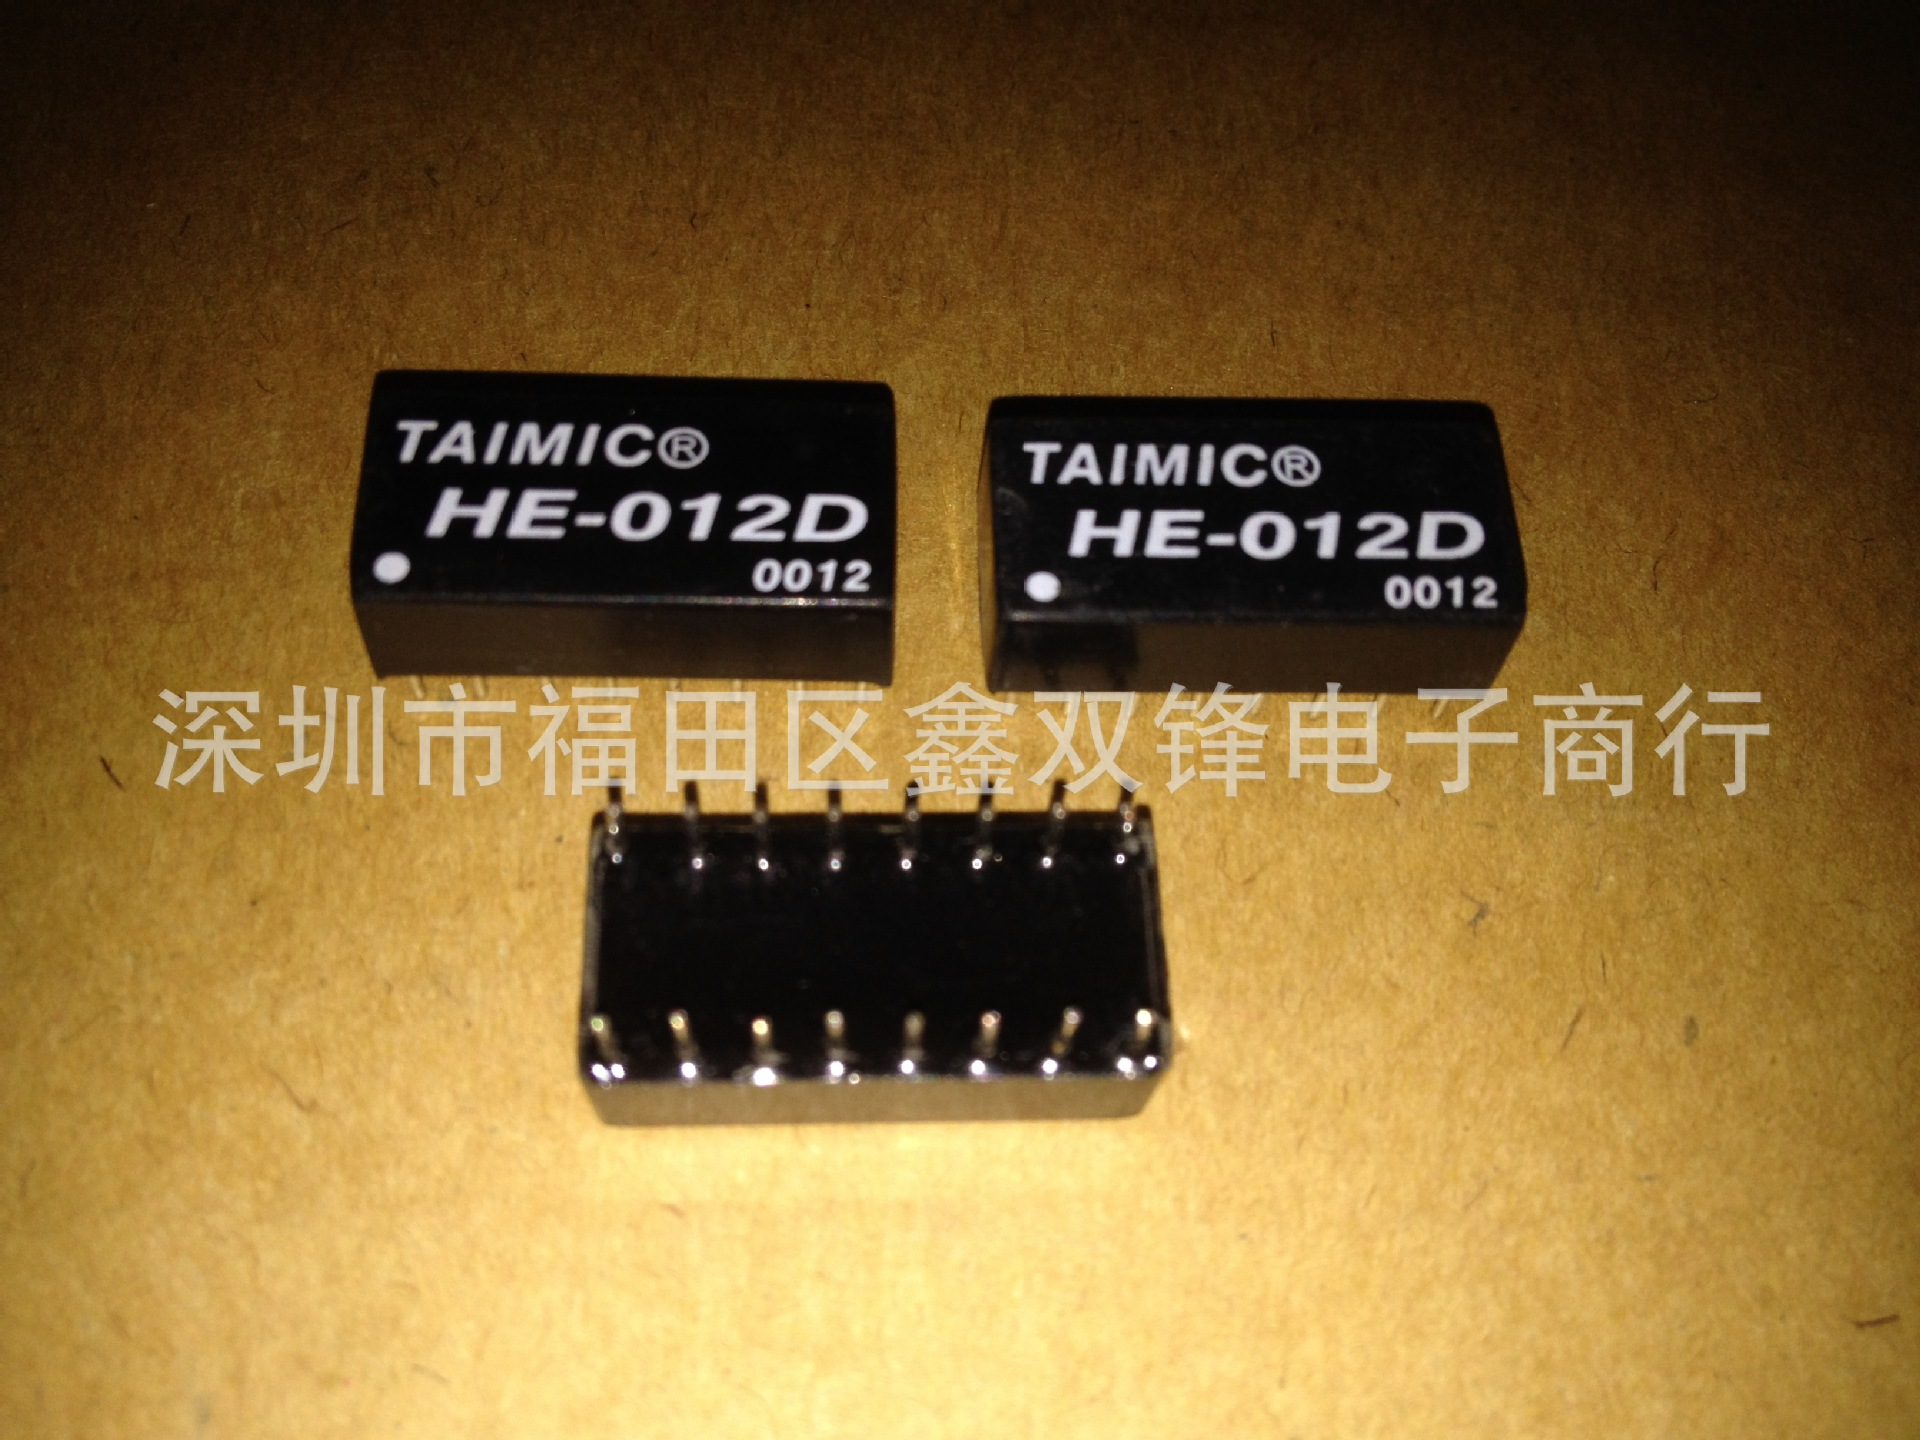 TAIMIC HED DRIVER DOWNLOAD